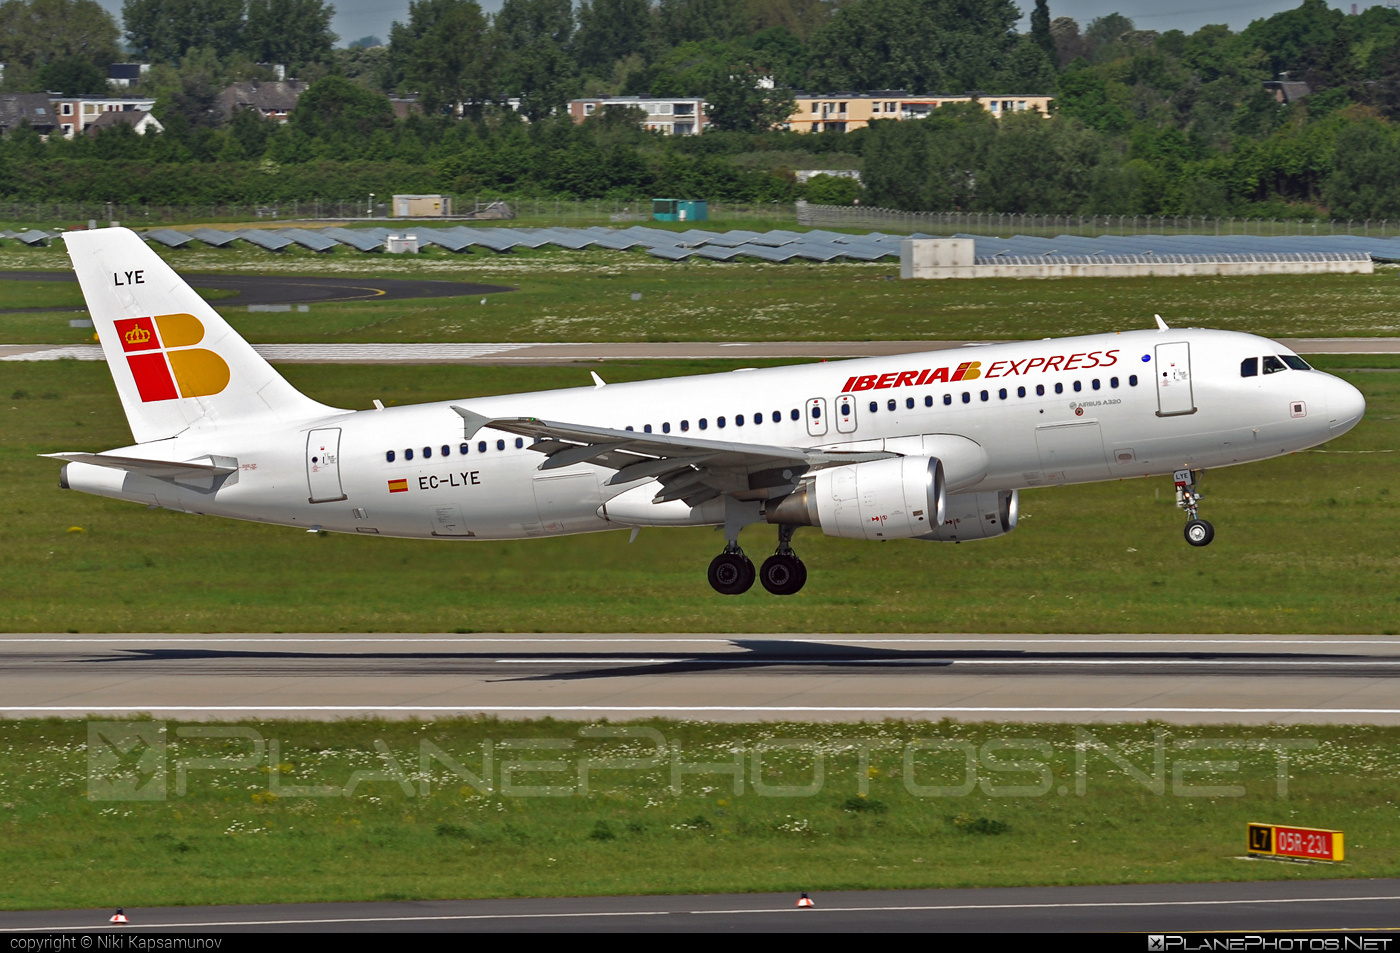 Airbus A320-216 - EC-LYE operated by Iberia Express #a320 #a320family #airbus #airbus320 #iberia #iberiaexpress